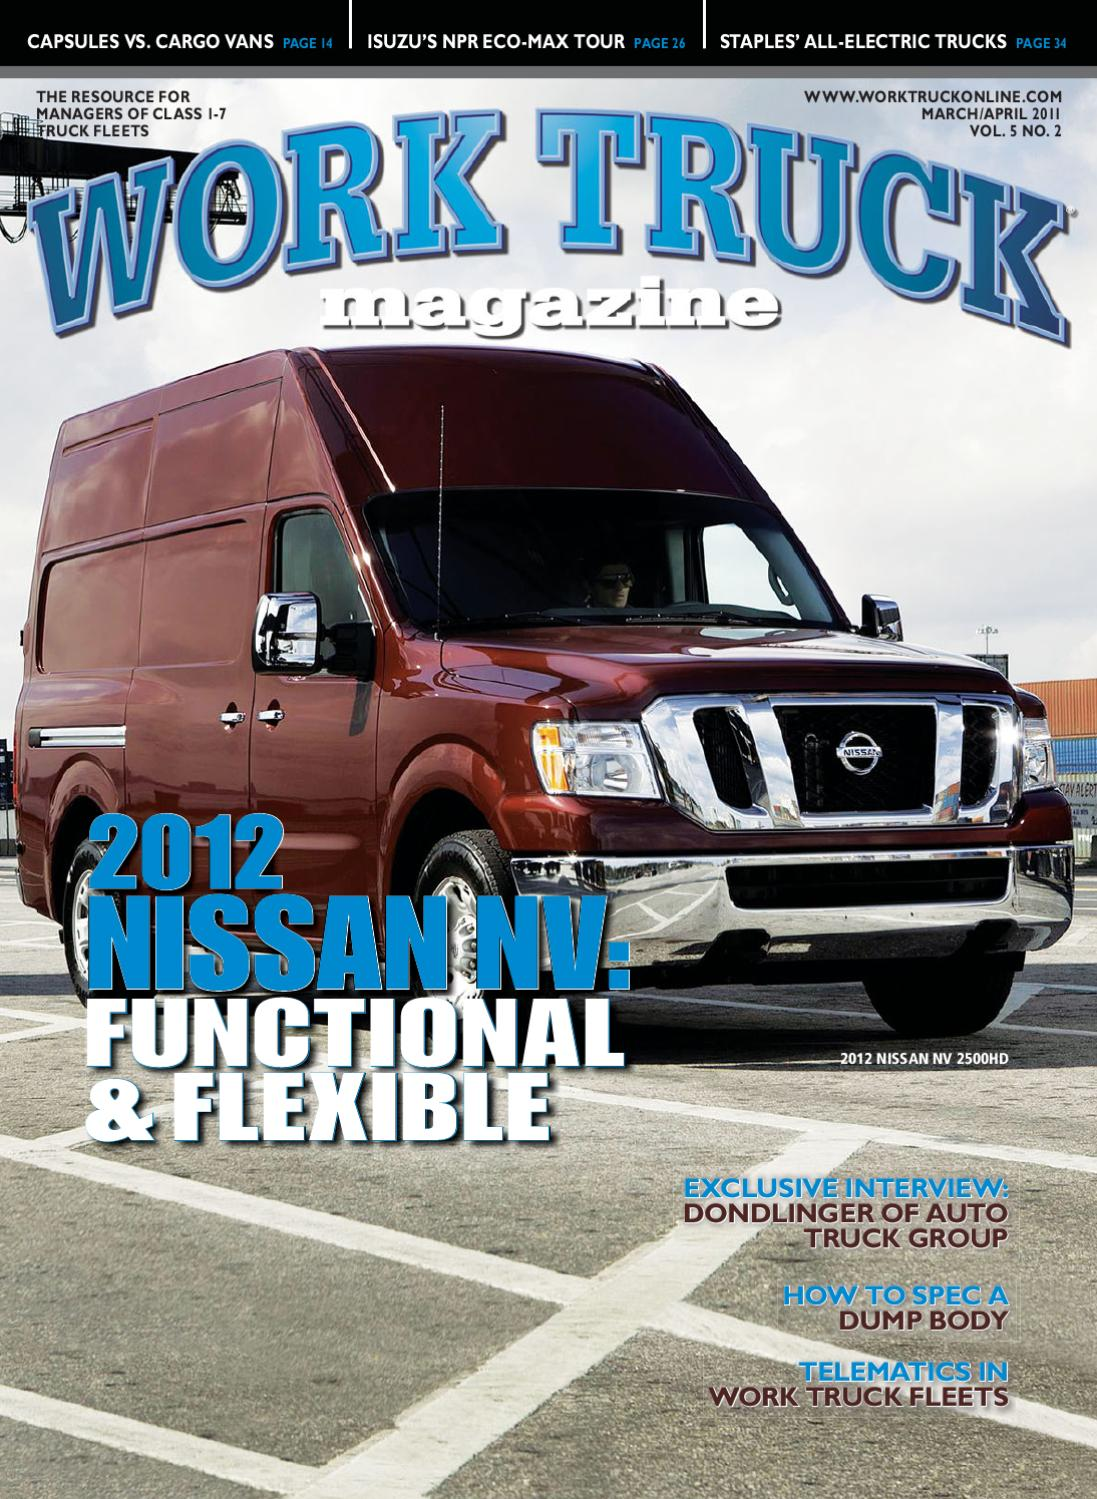 Letter to the editor of work truck more sophisticated fuel - Letter To The Editor Of Work Truck More Sophisticated Fuel 38